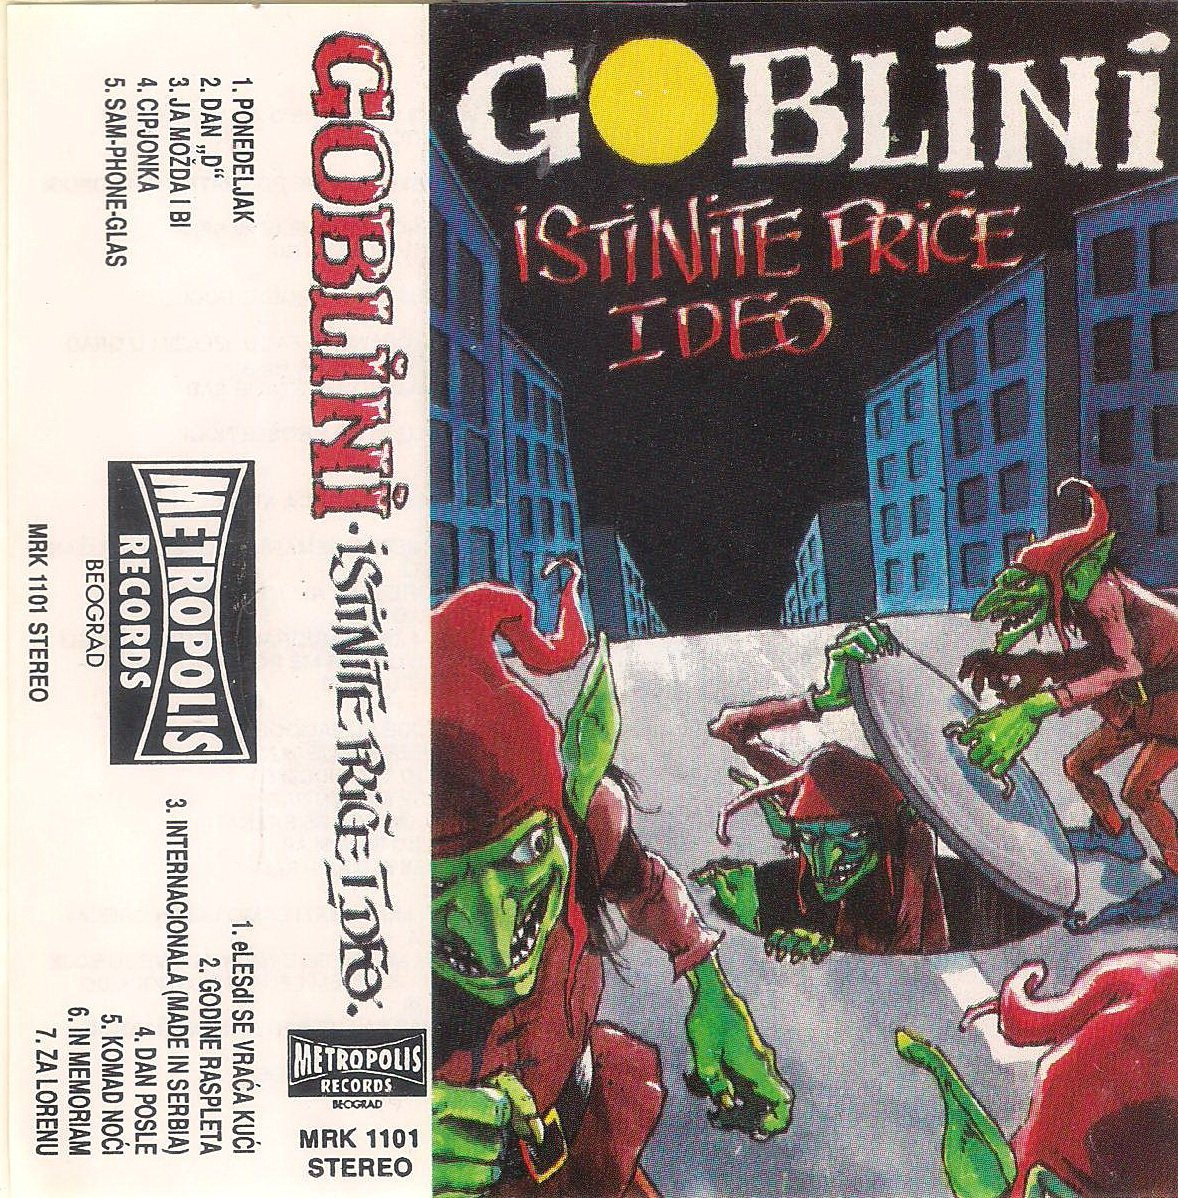 goblini istinite price